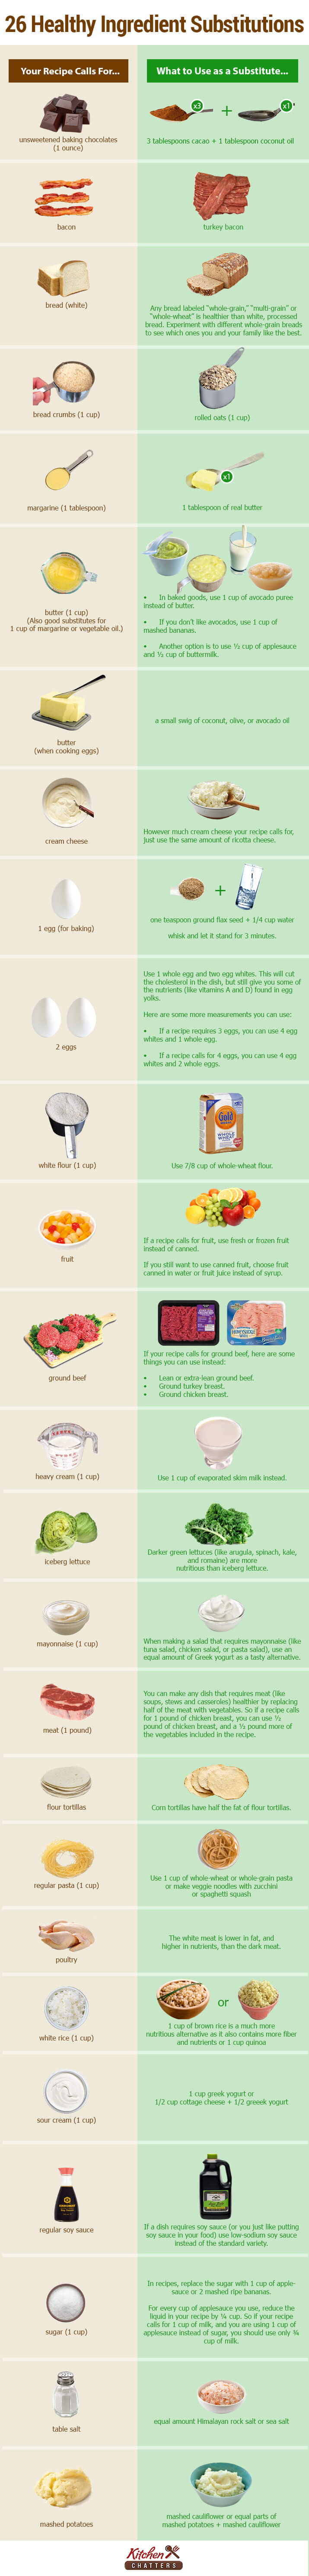 healthy-ingredient-sub-infographic